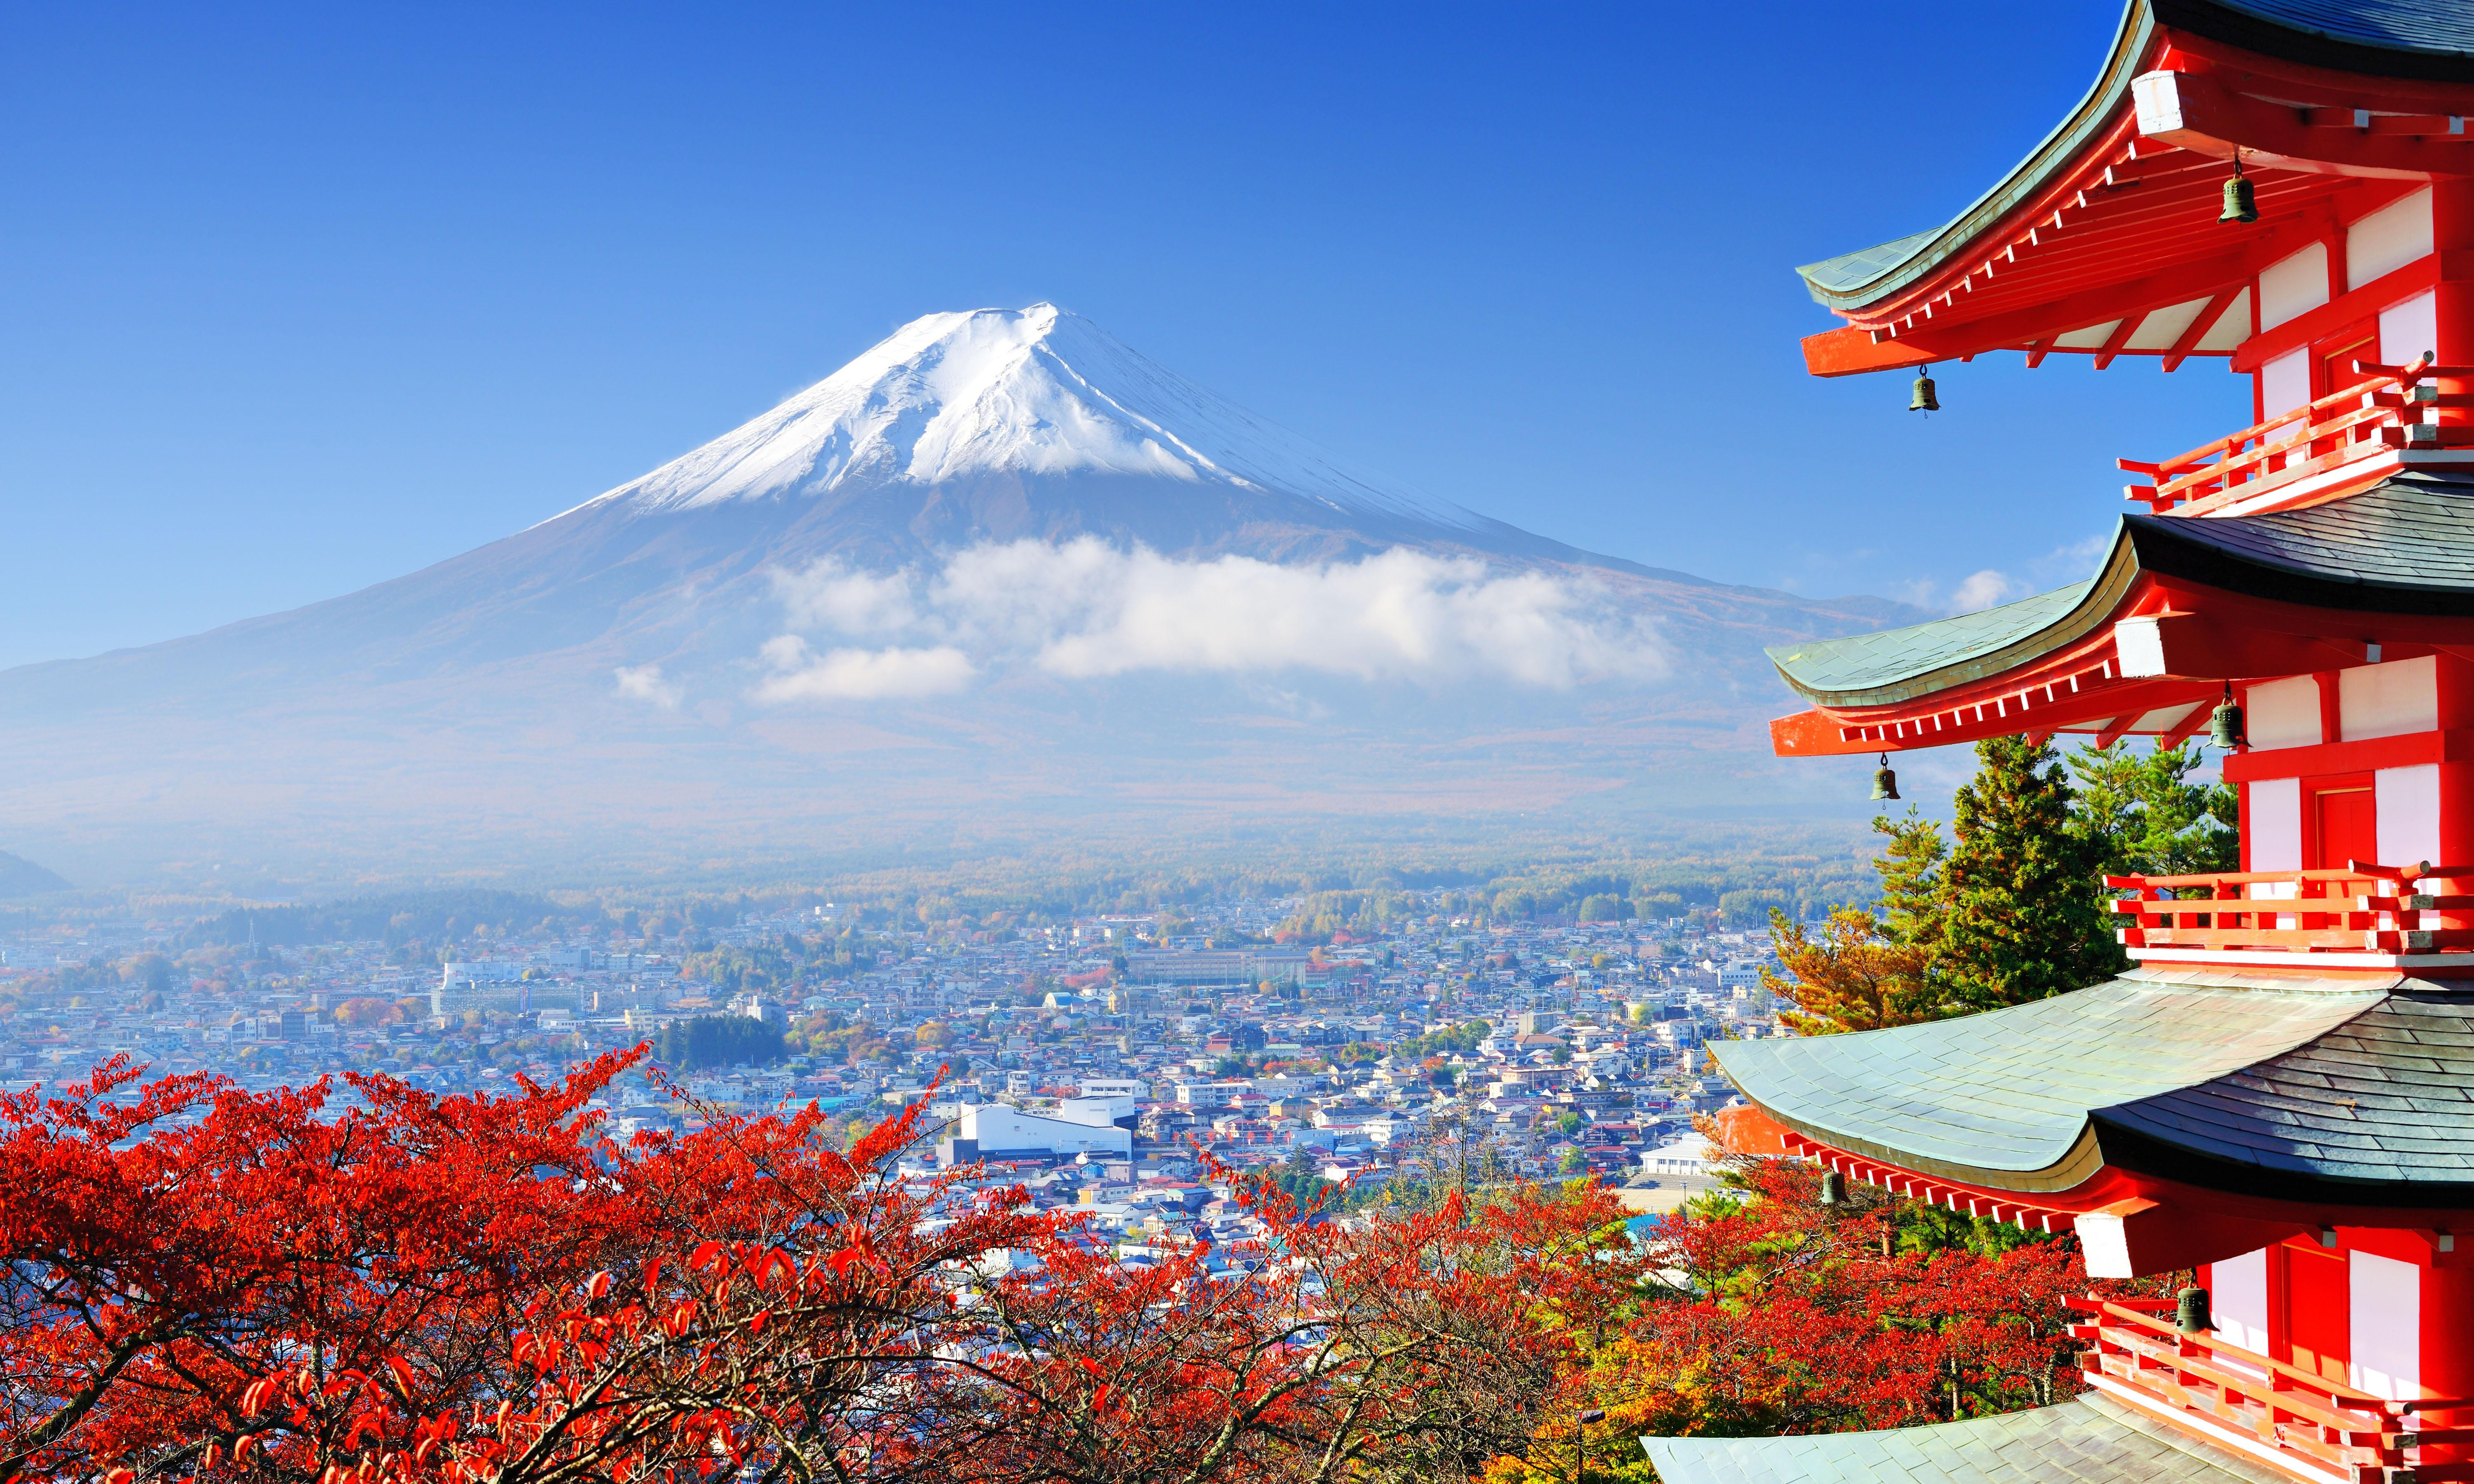 The insiders' guide to Japan's Rugby World Cup cities